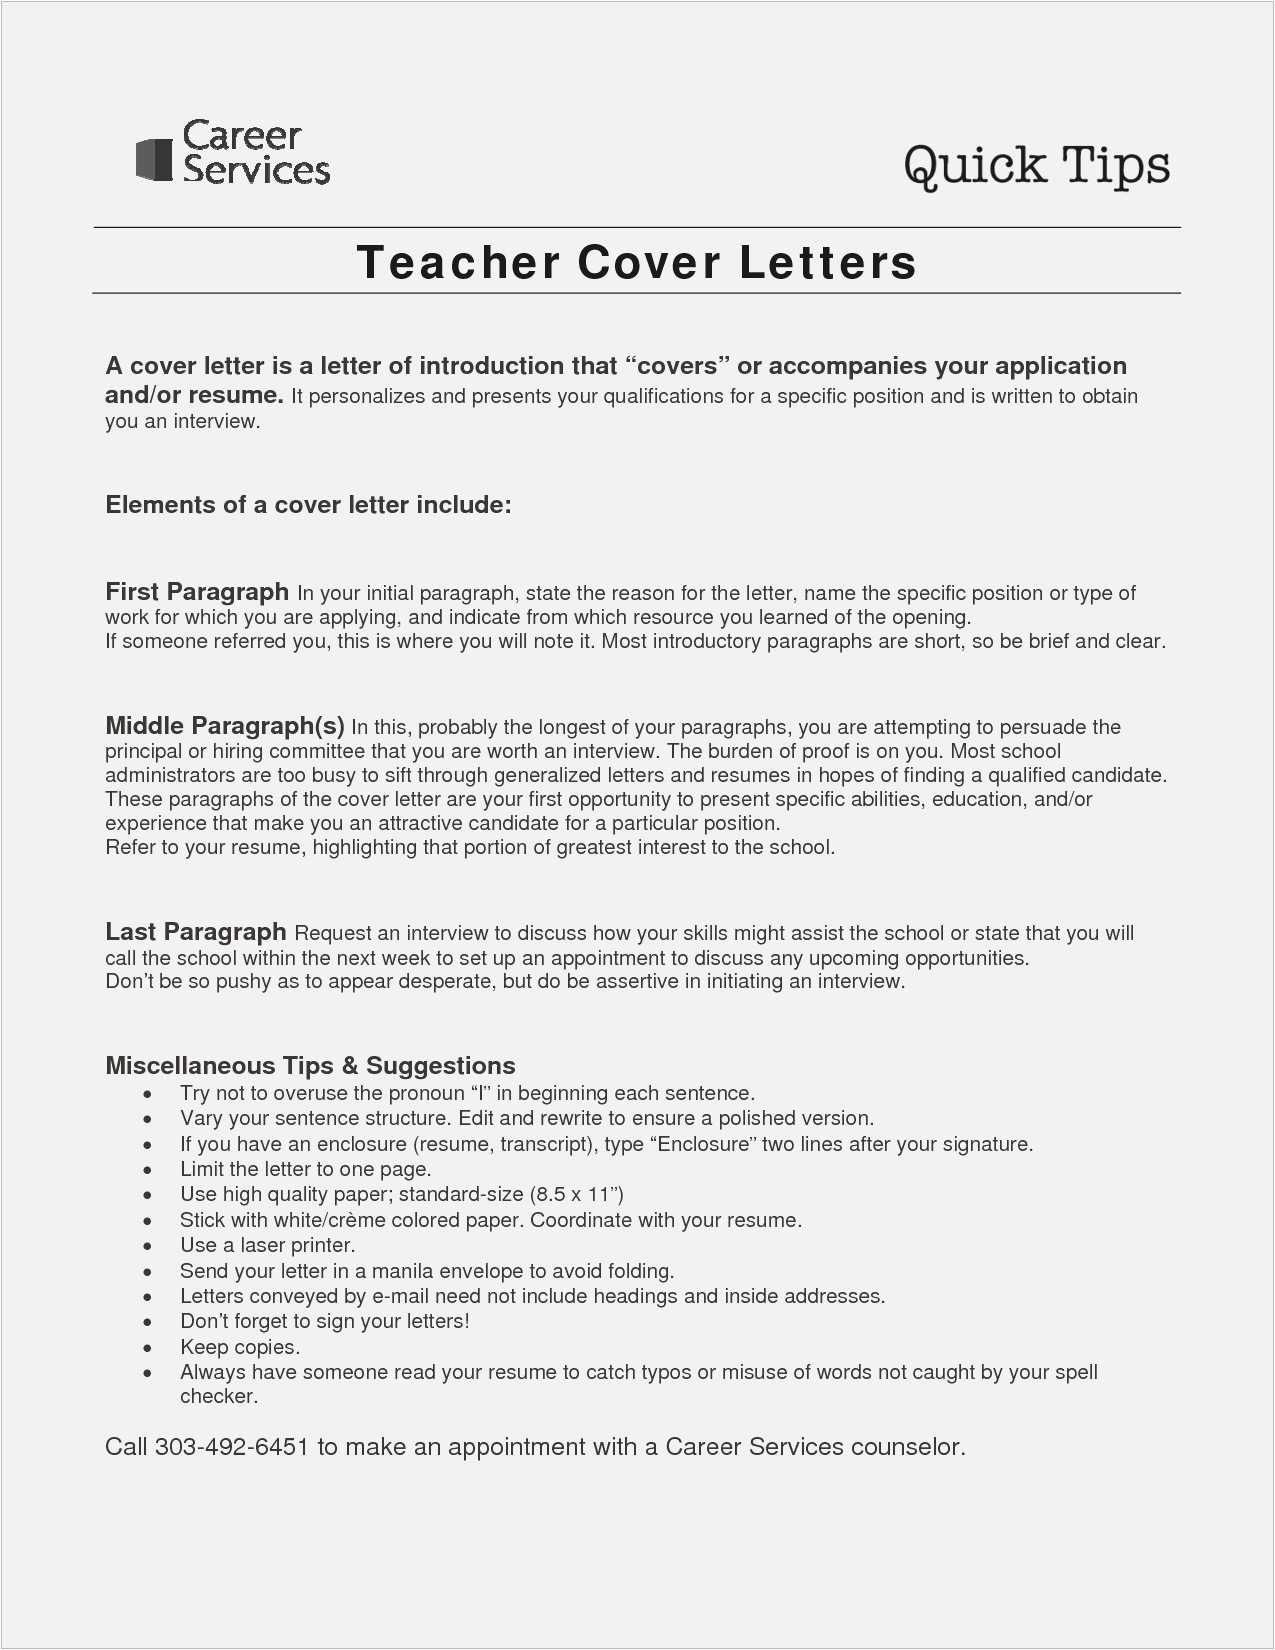 Free Resume Writing Services - 25 Free Admission Essay Writing Service 2018